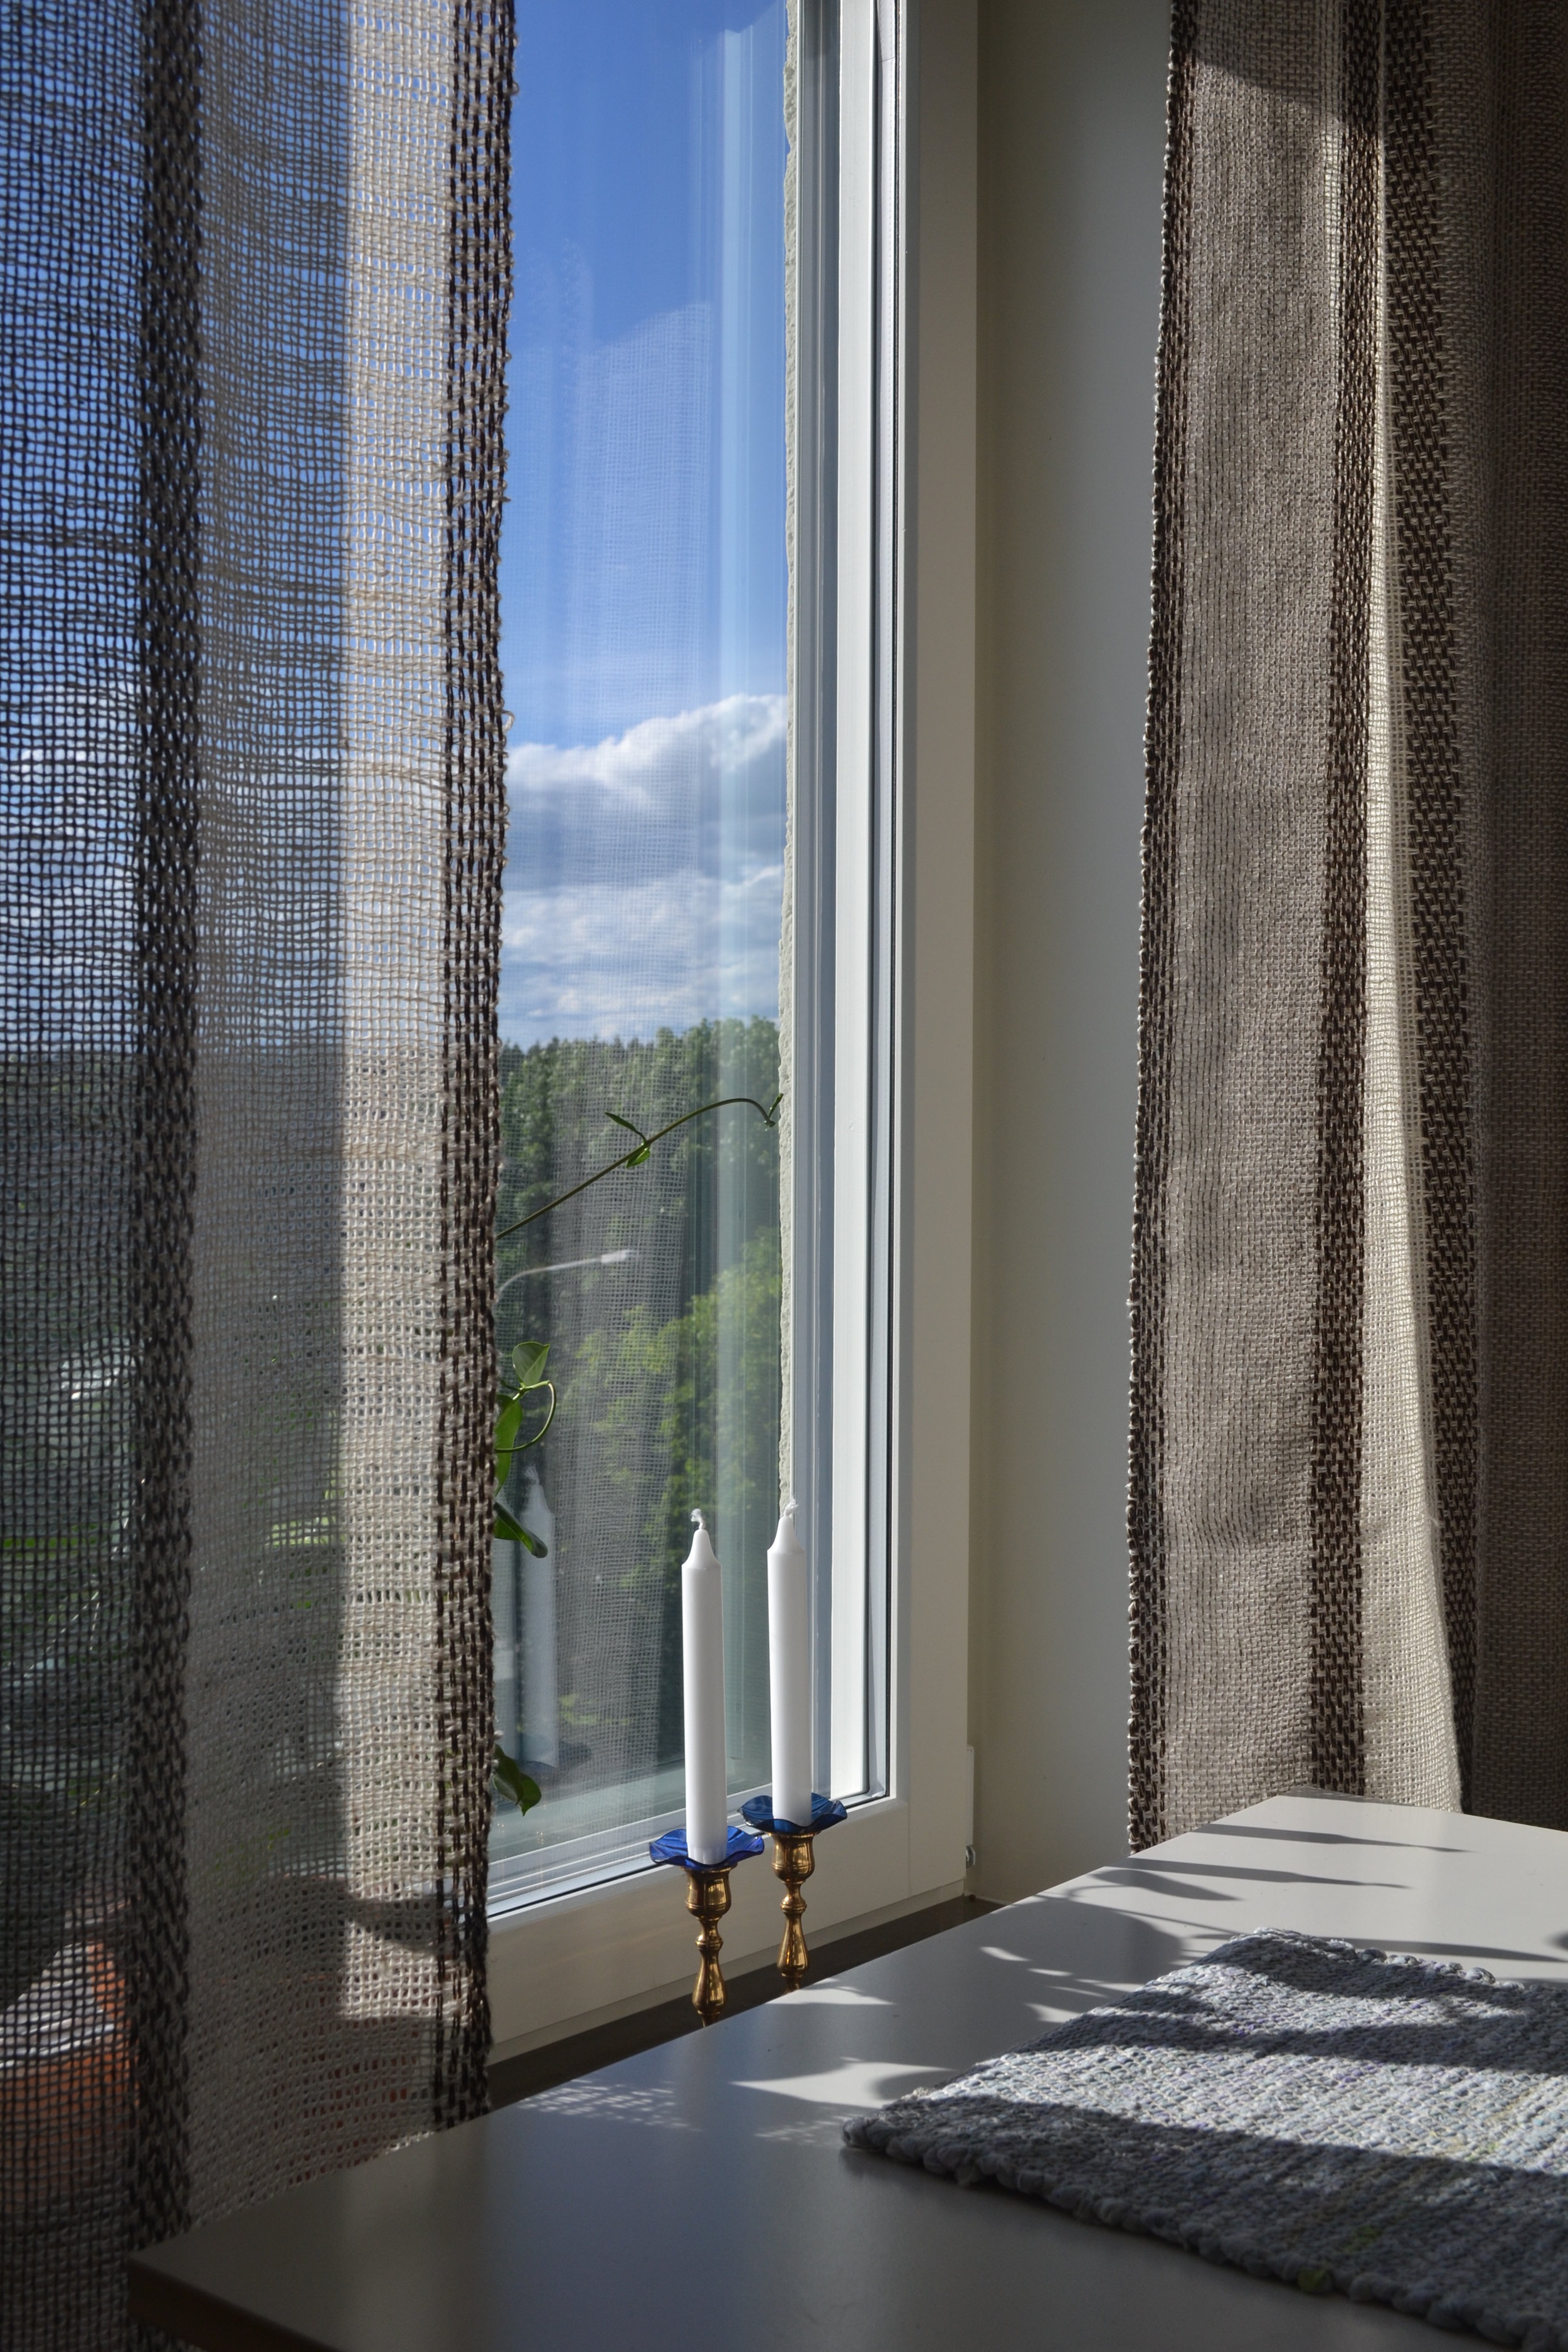 Curtains in wool/linen yarn